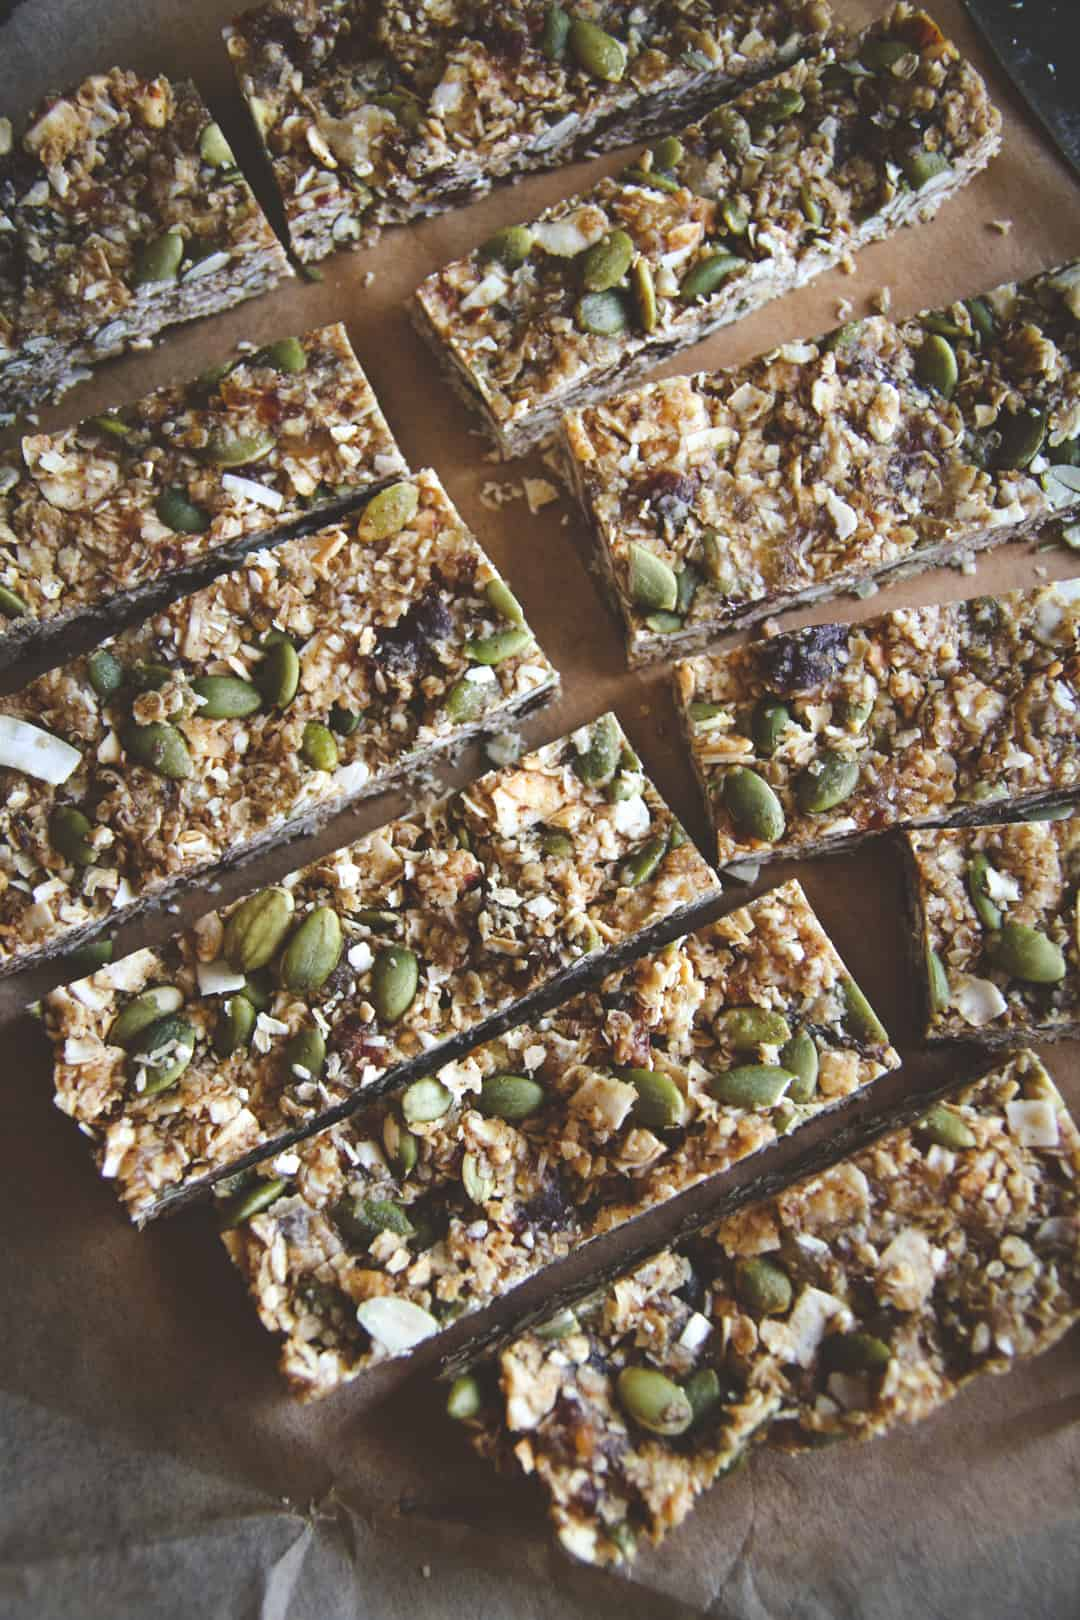 Almond butter granola bars, naturally sweetened gluten free vegan granola bars